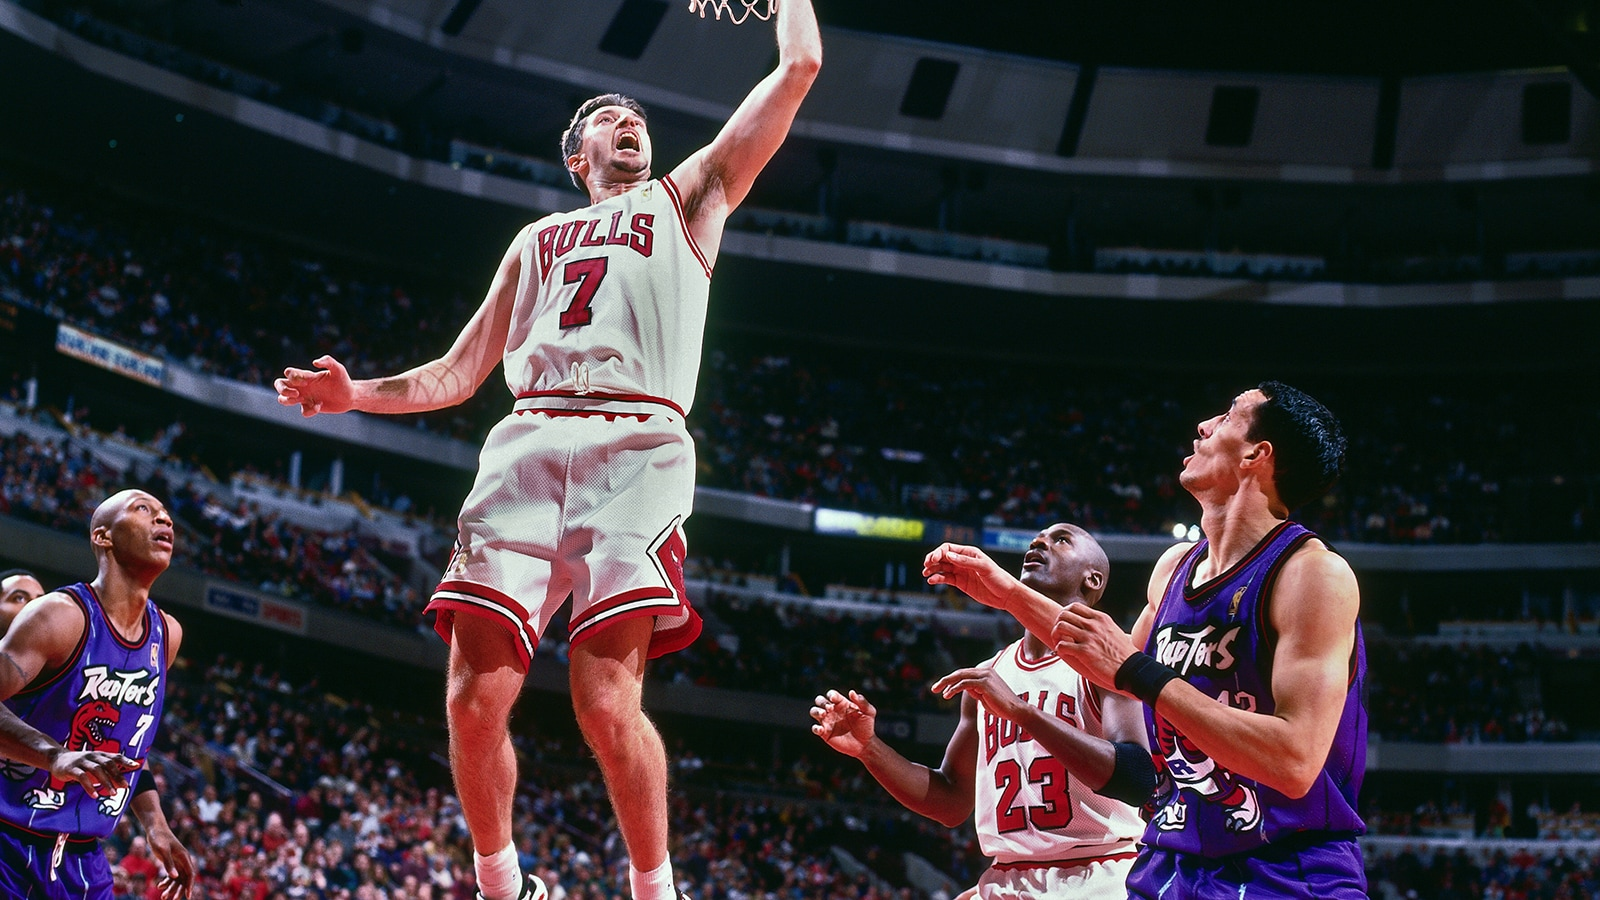 The overlooked star that is Toni Kukoc | Chicago Bulls